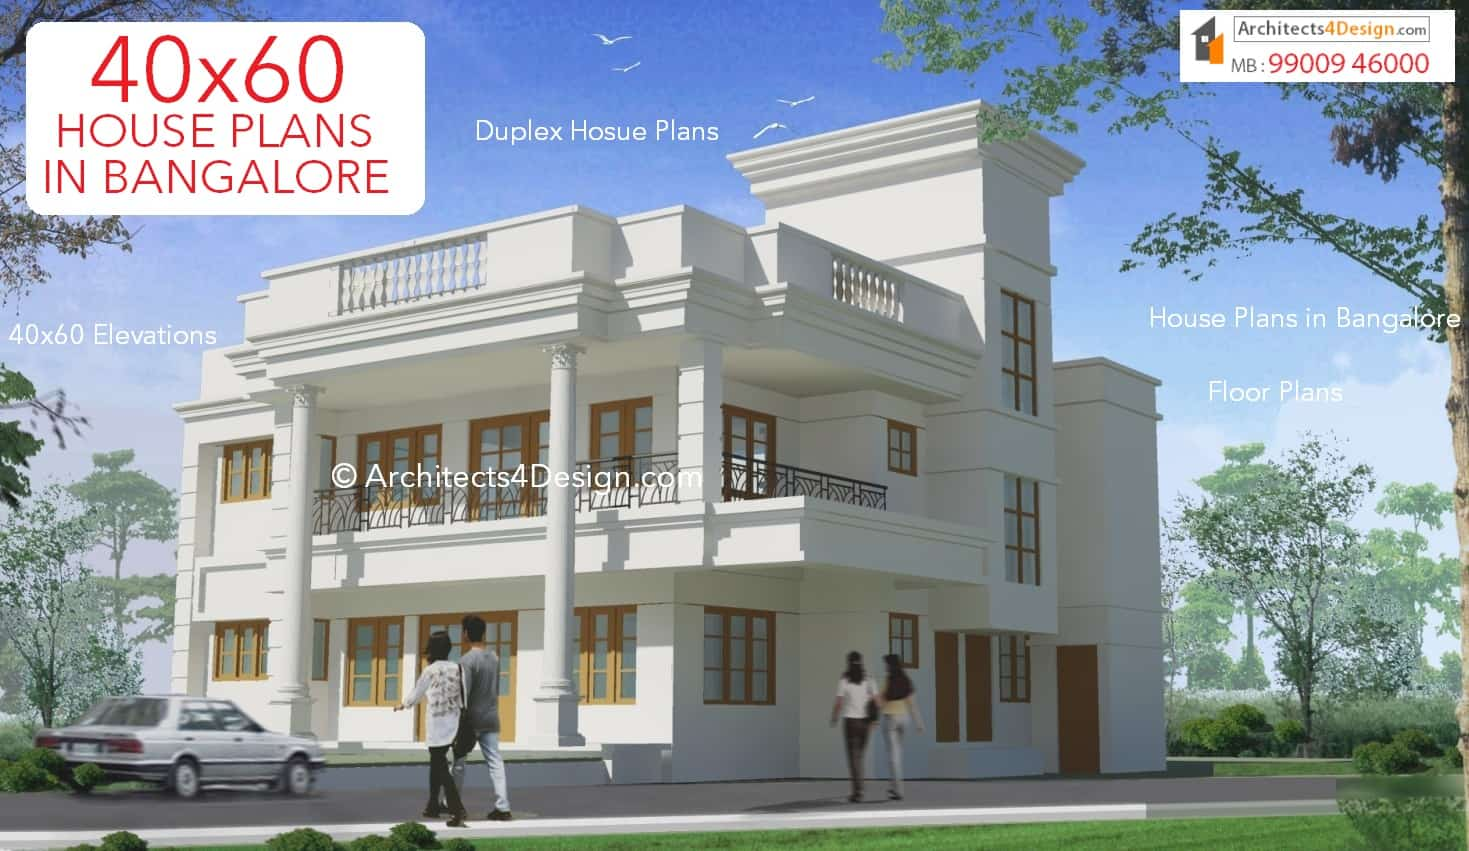 Ground Floor House Elevation In Bangalore : House plans in bangalore duplex